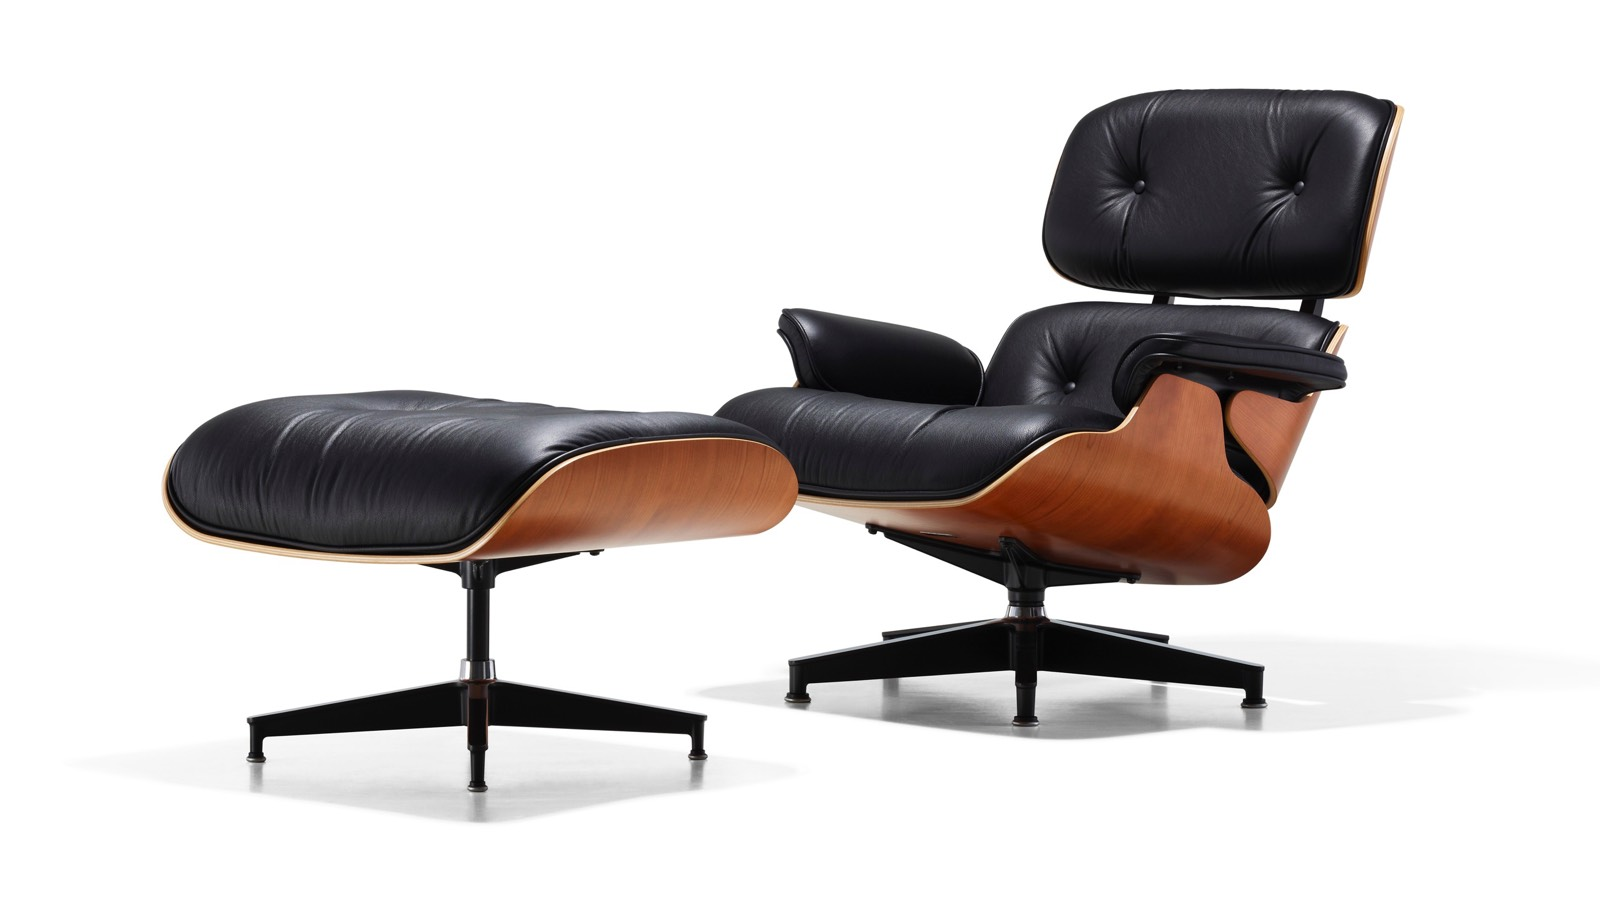 Black leather Eames Lounge Chair and Ottoman with a wood veneer shell, viewed from a 45-degree angle.